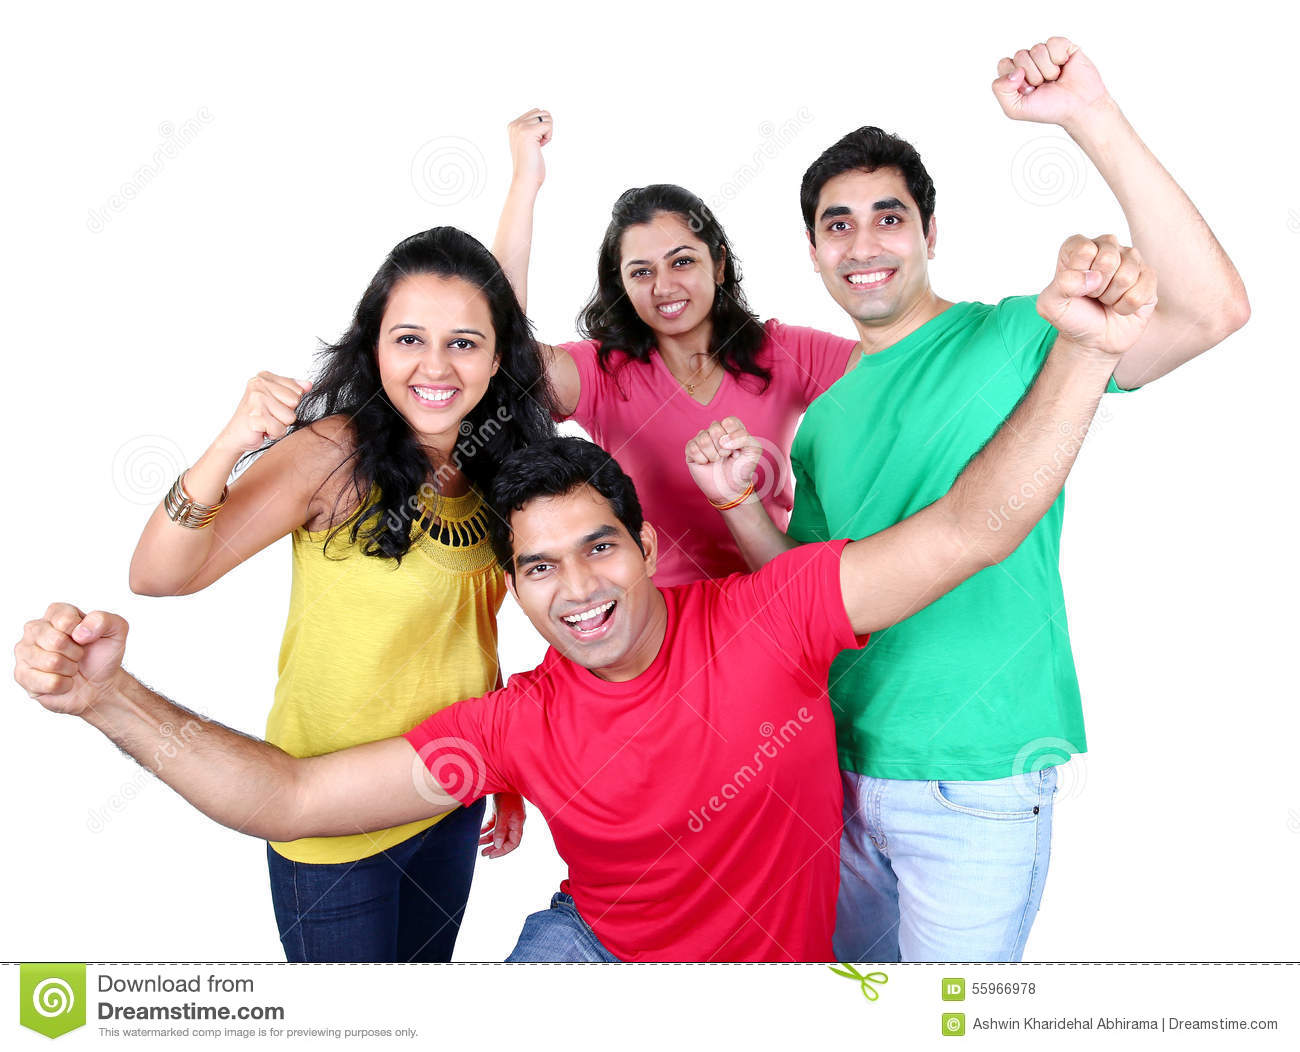 young-asian-group-people-looking-camera-smiling-celebrating-happy-portrait-isolated-white-background-55966978.jpg